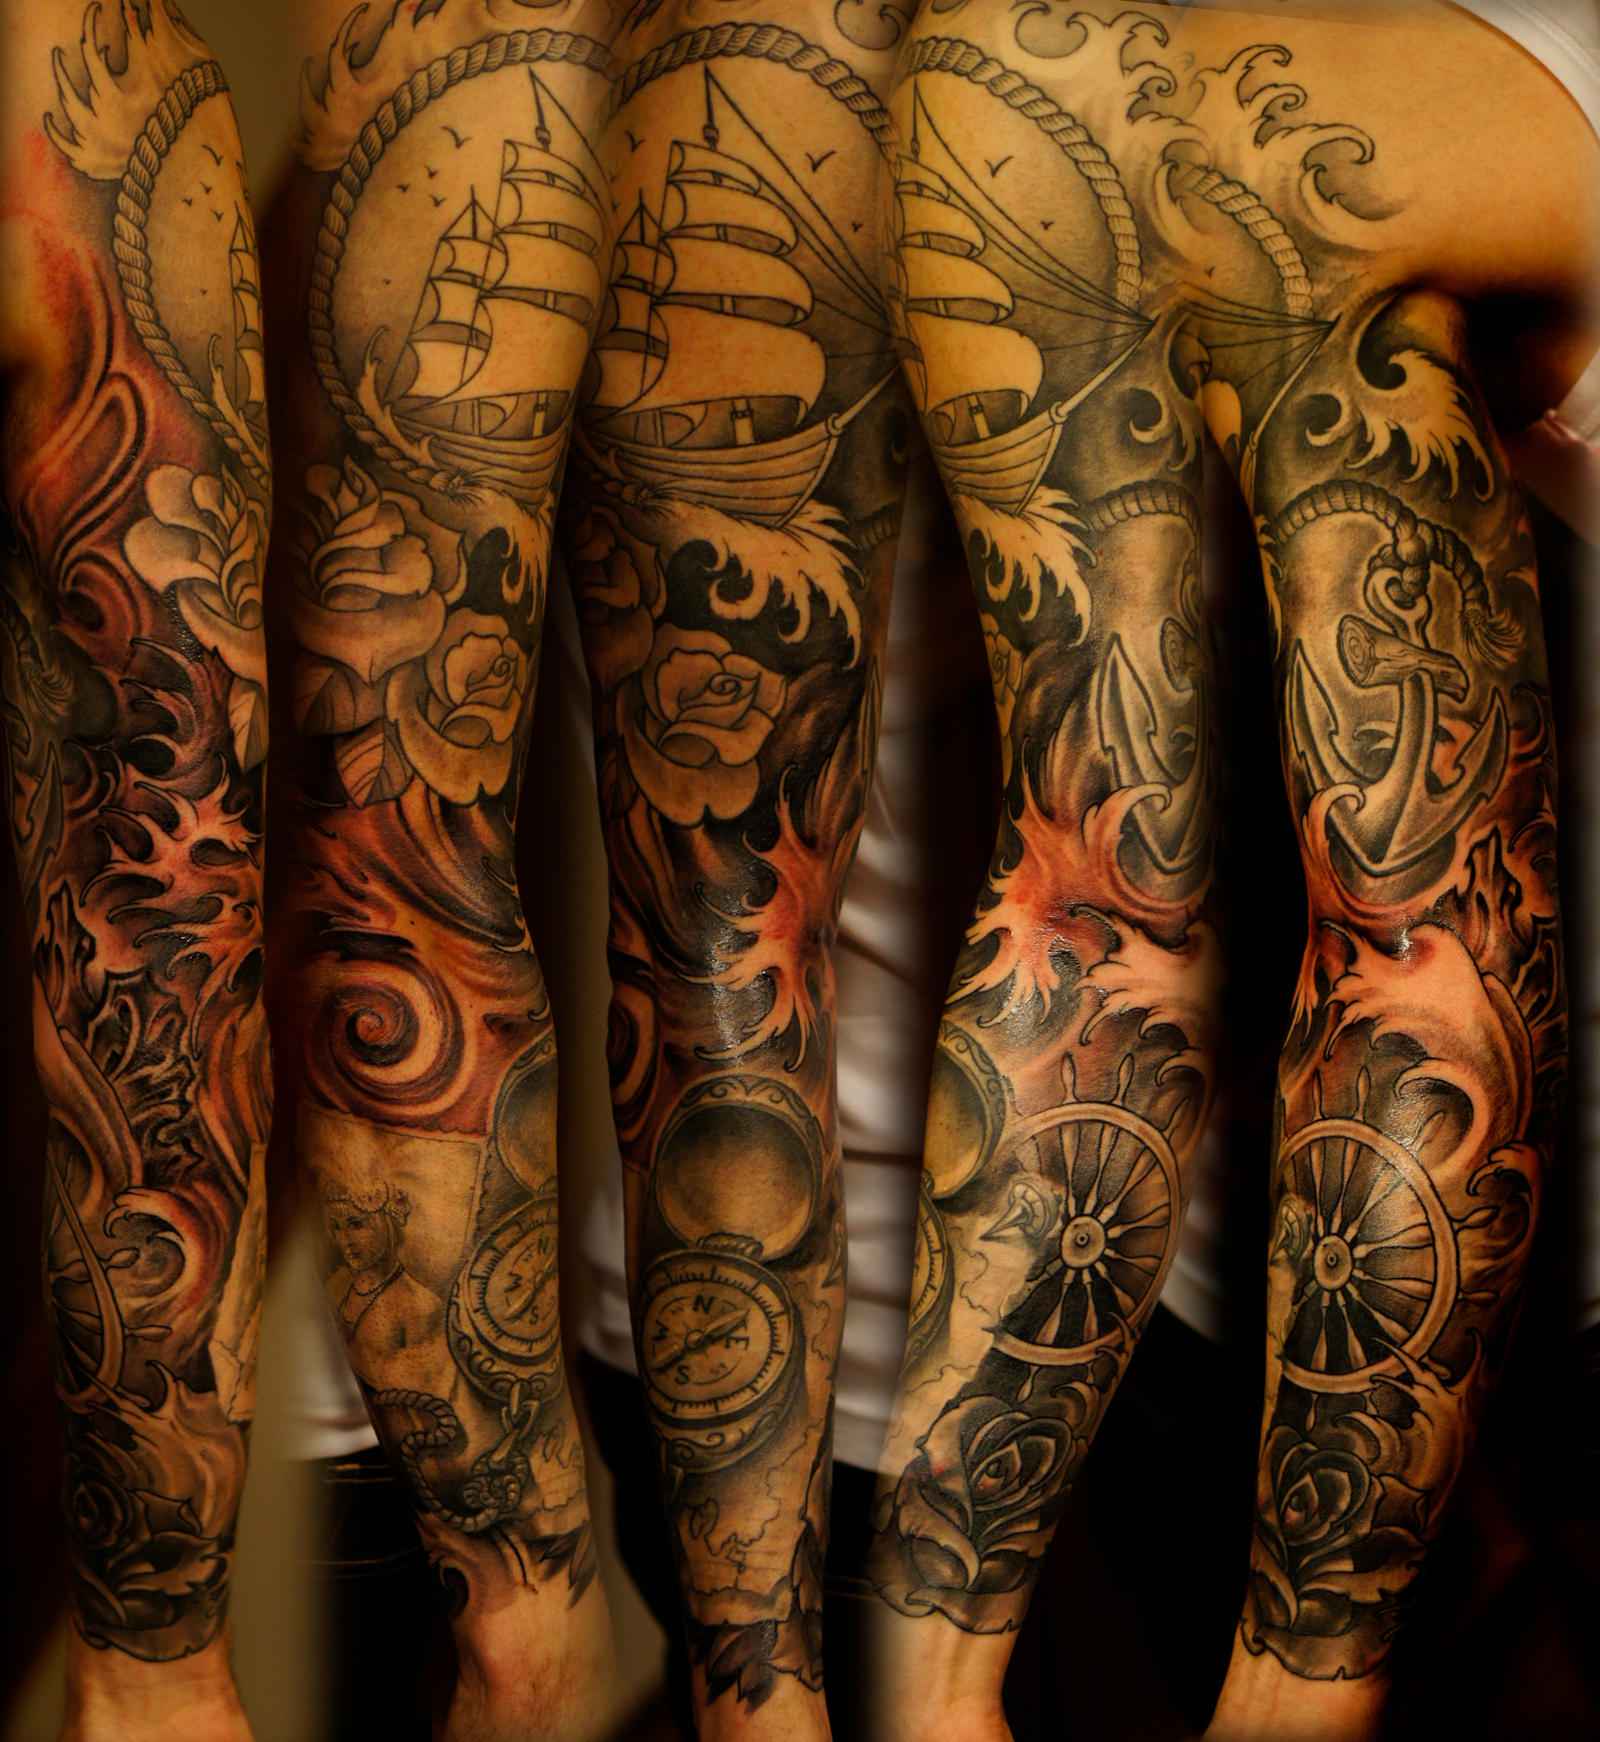 sea sleeve by strangeris on DeviantArt